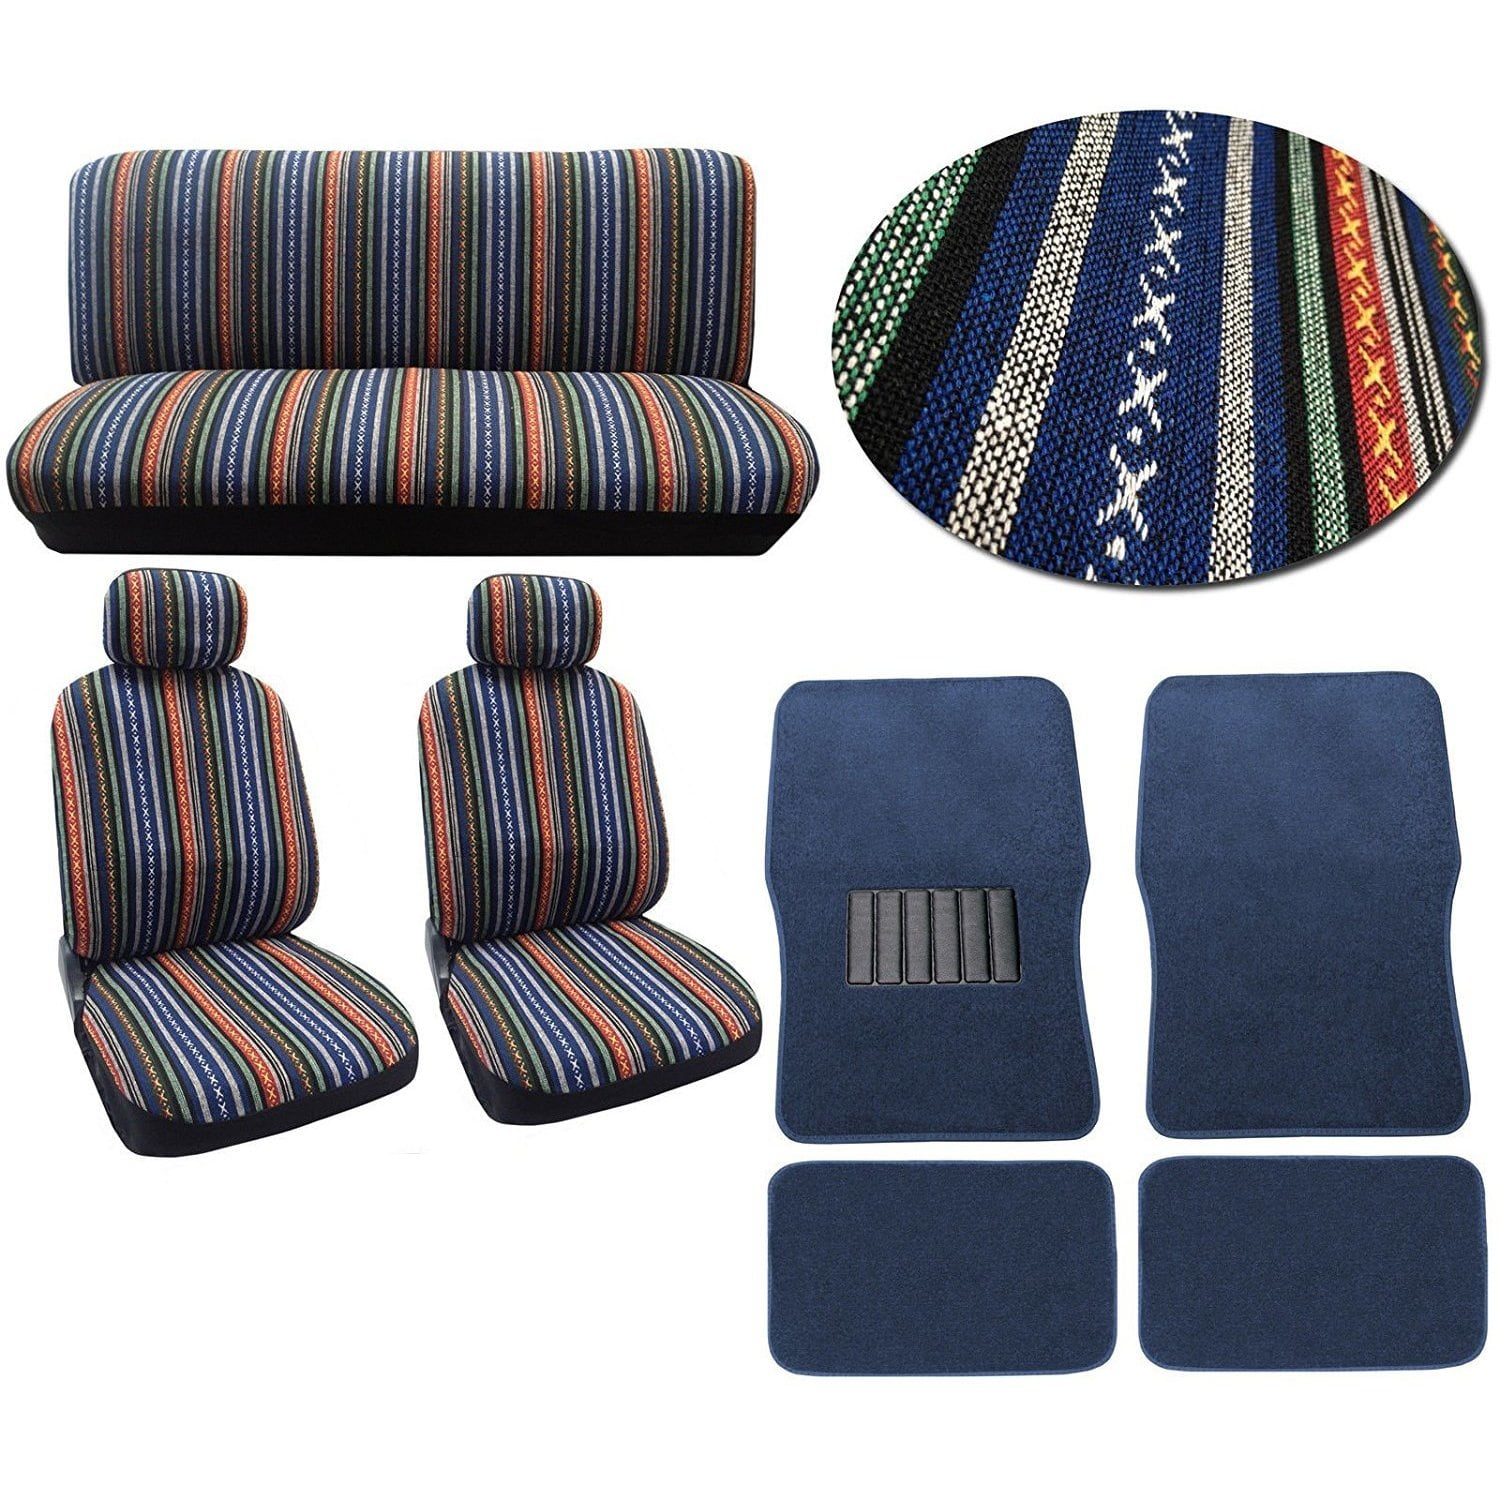 Unique Imports 12pc Car Seat Cover Set Striped Saddle Blanket Front Low Bucket